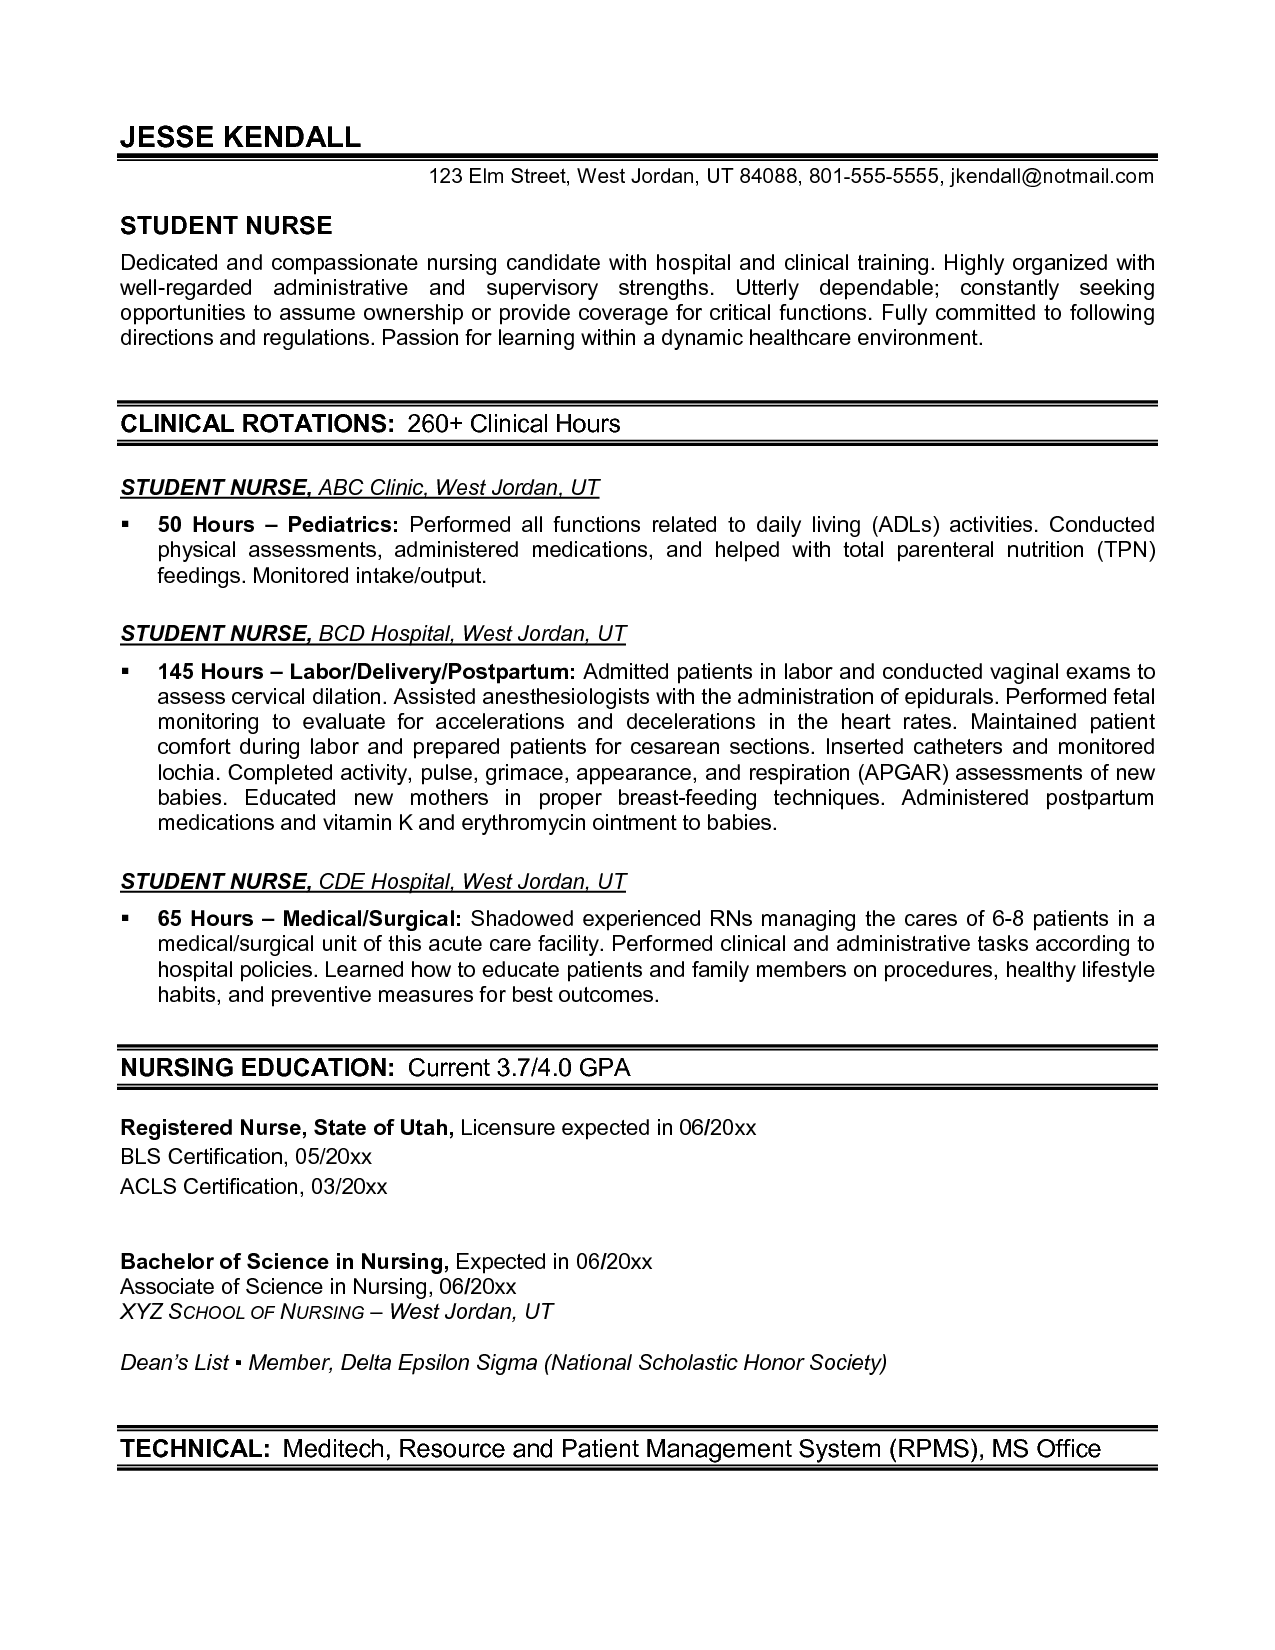 Resume Template Nursing | Nursing | Pinterest | Nursing resume ...